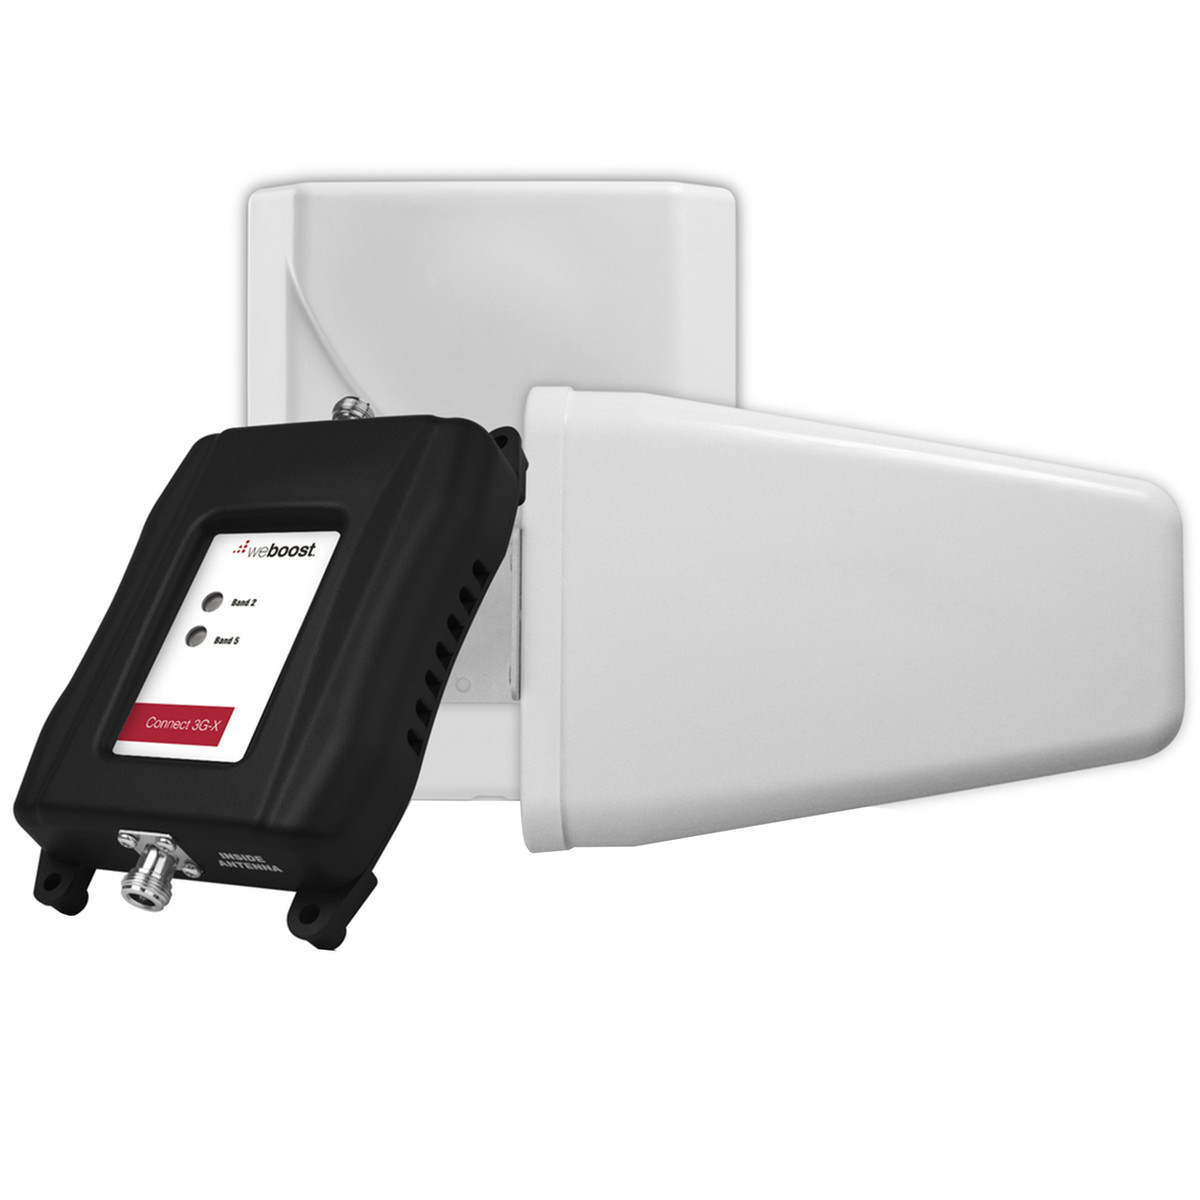 weBoost Connect 3G-X Cell Phone Signal Booster | 470105 Complete Kit